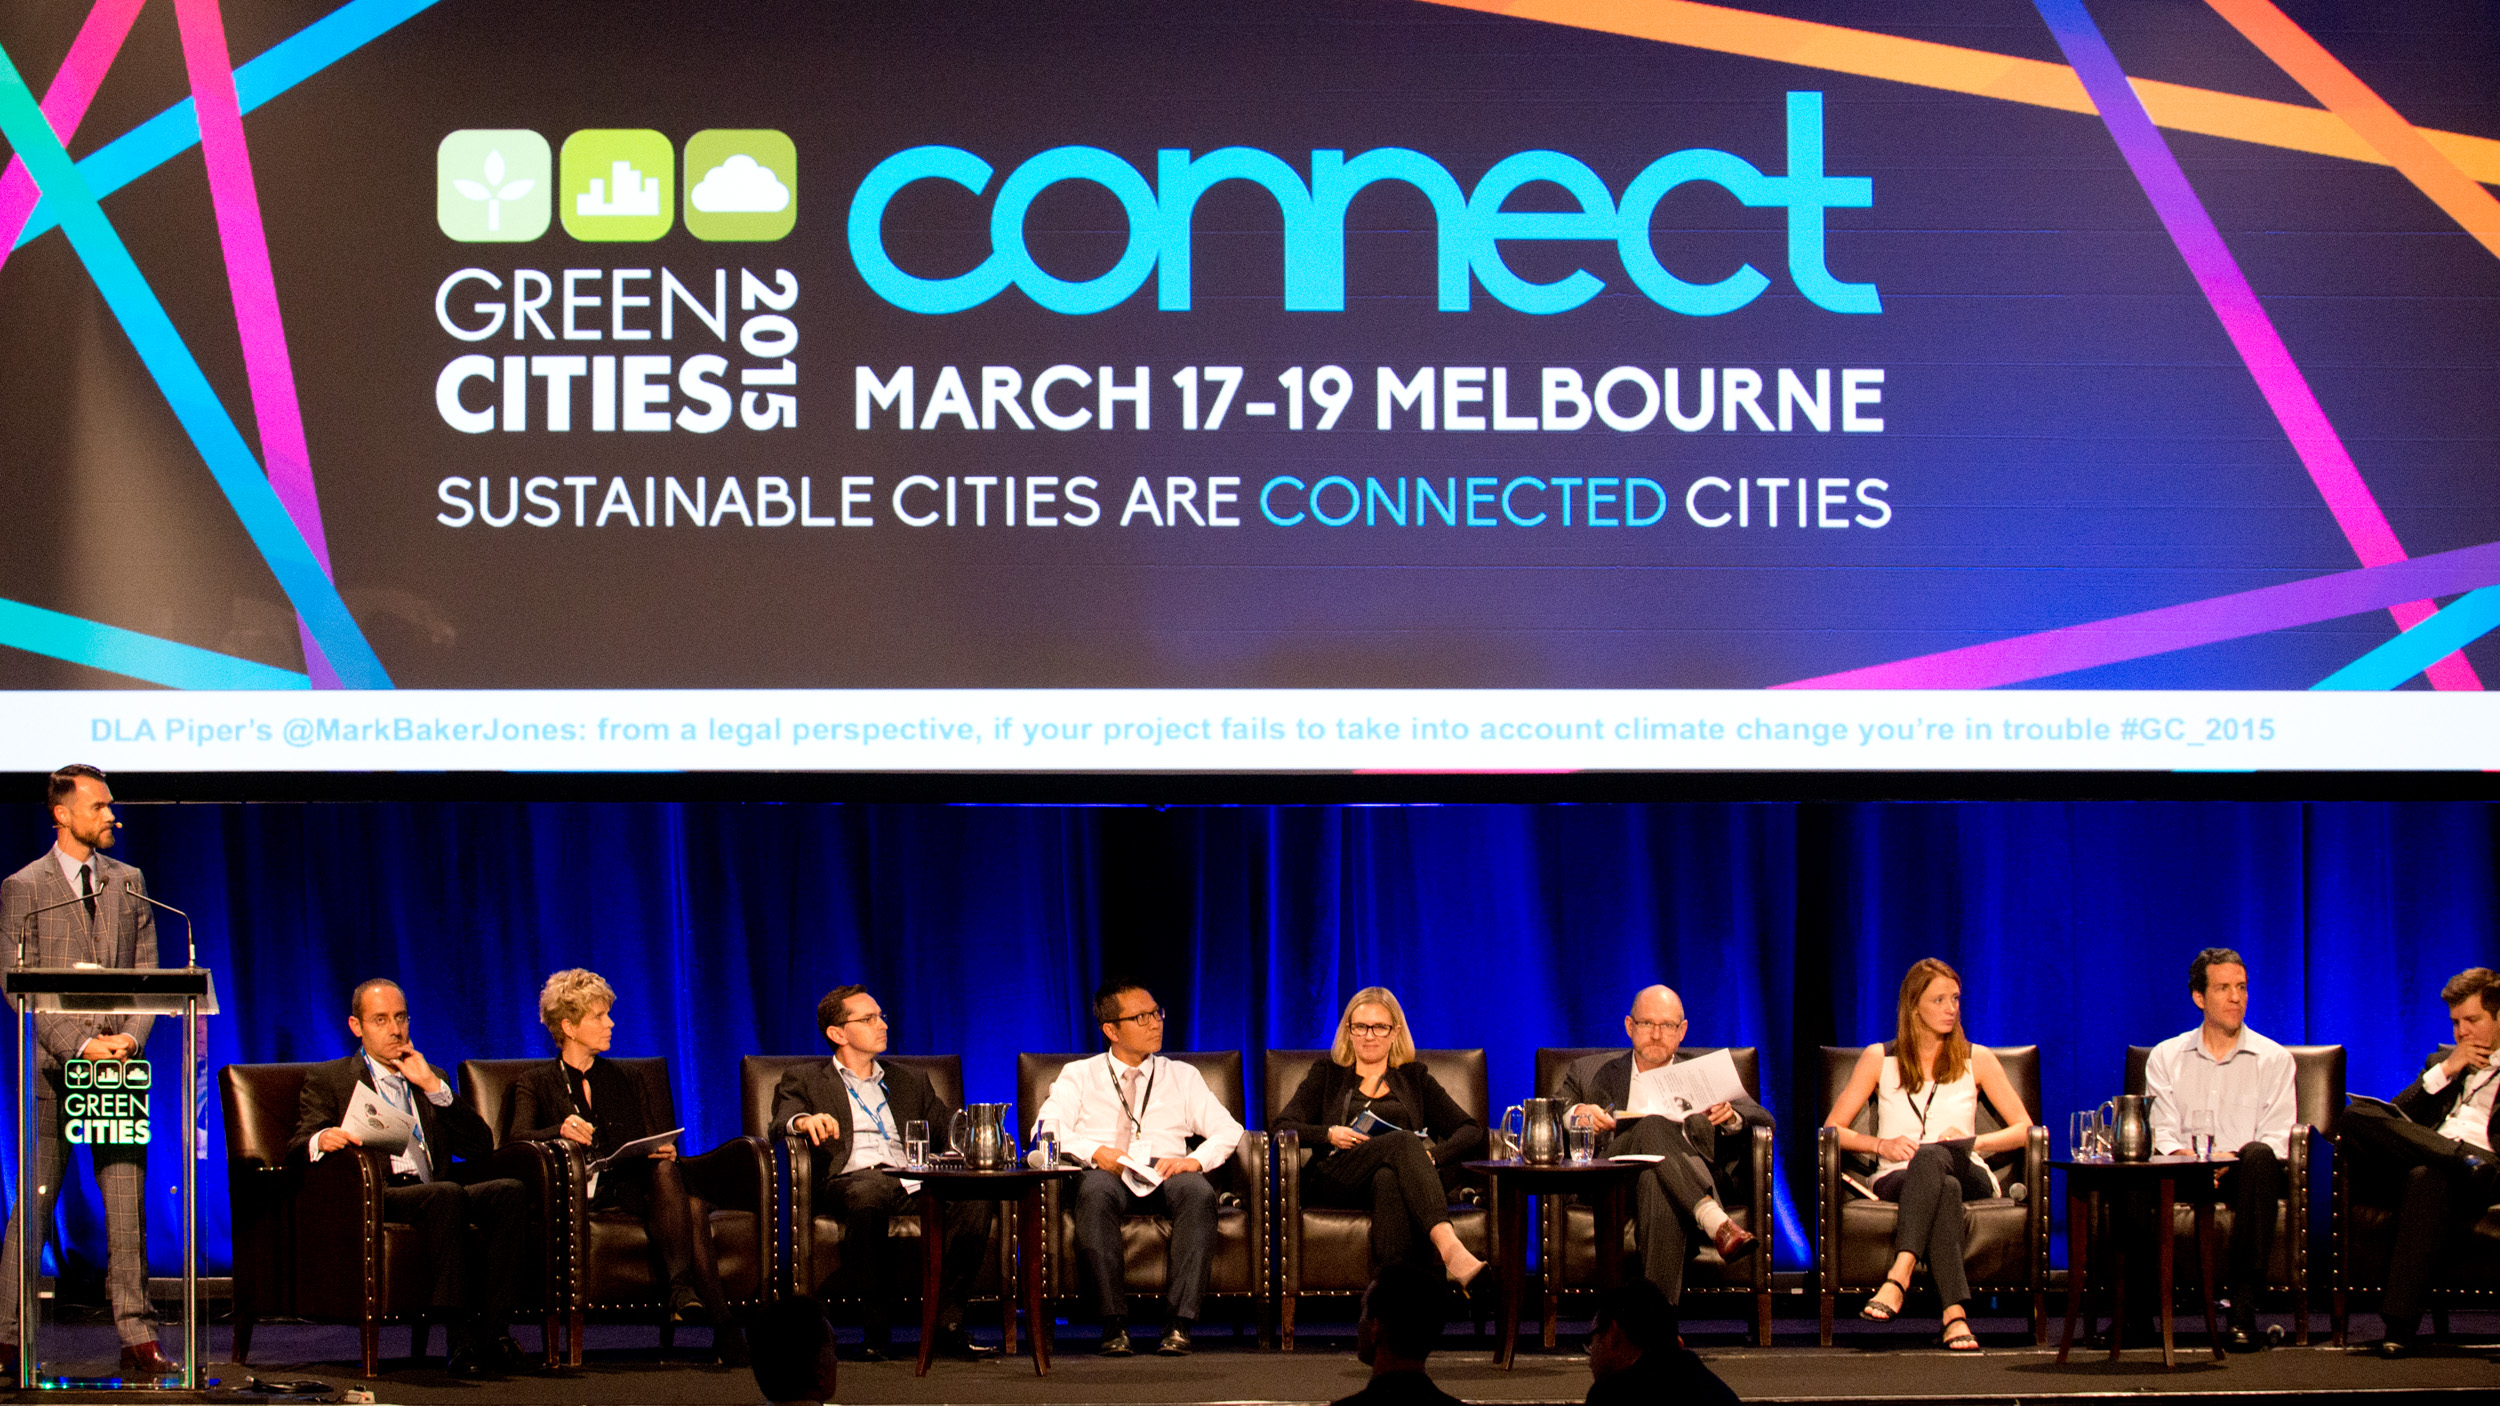 Sustainability changing cities for the better